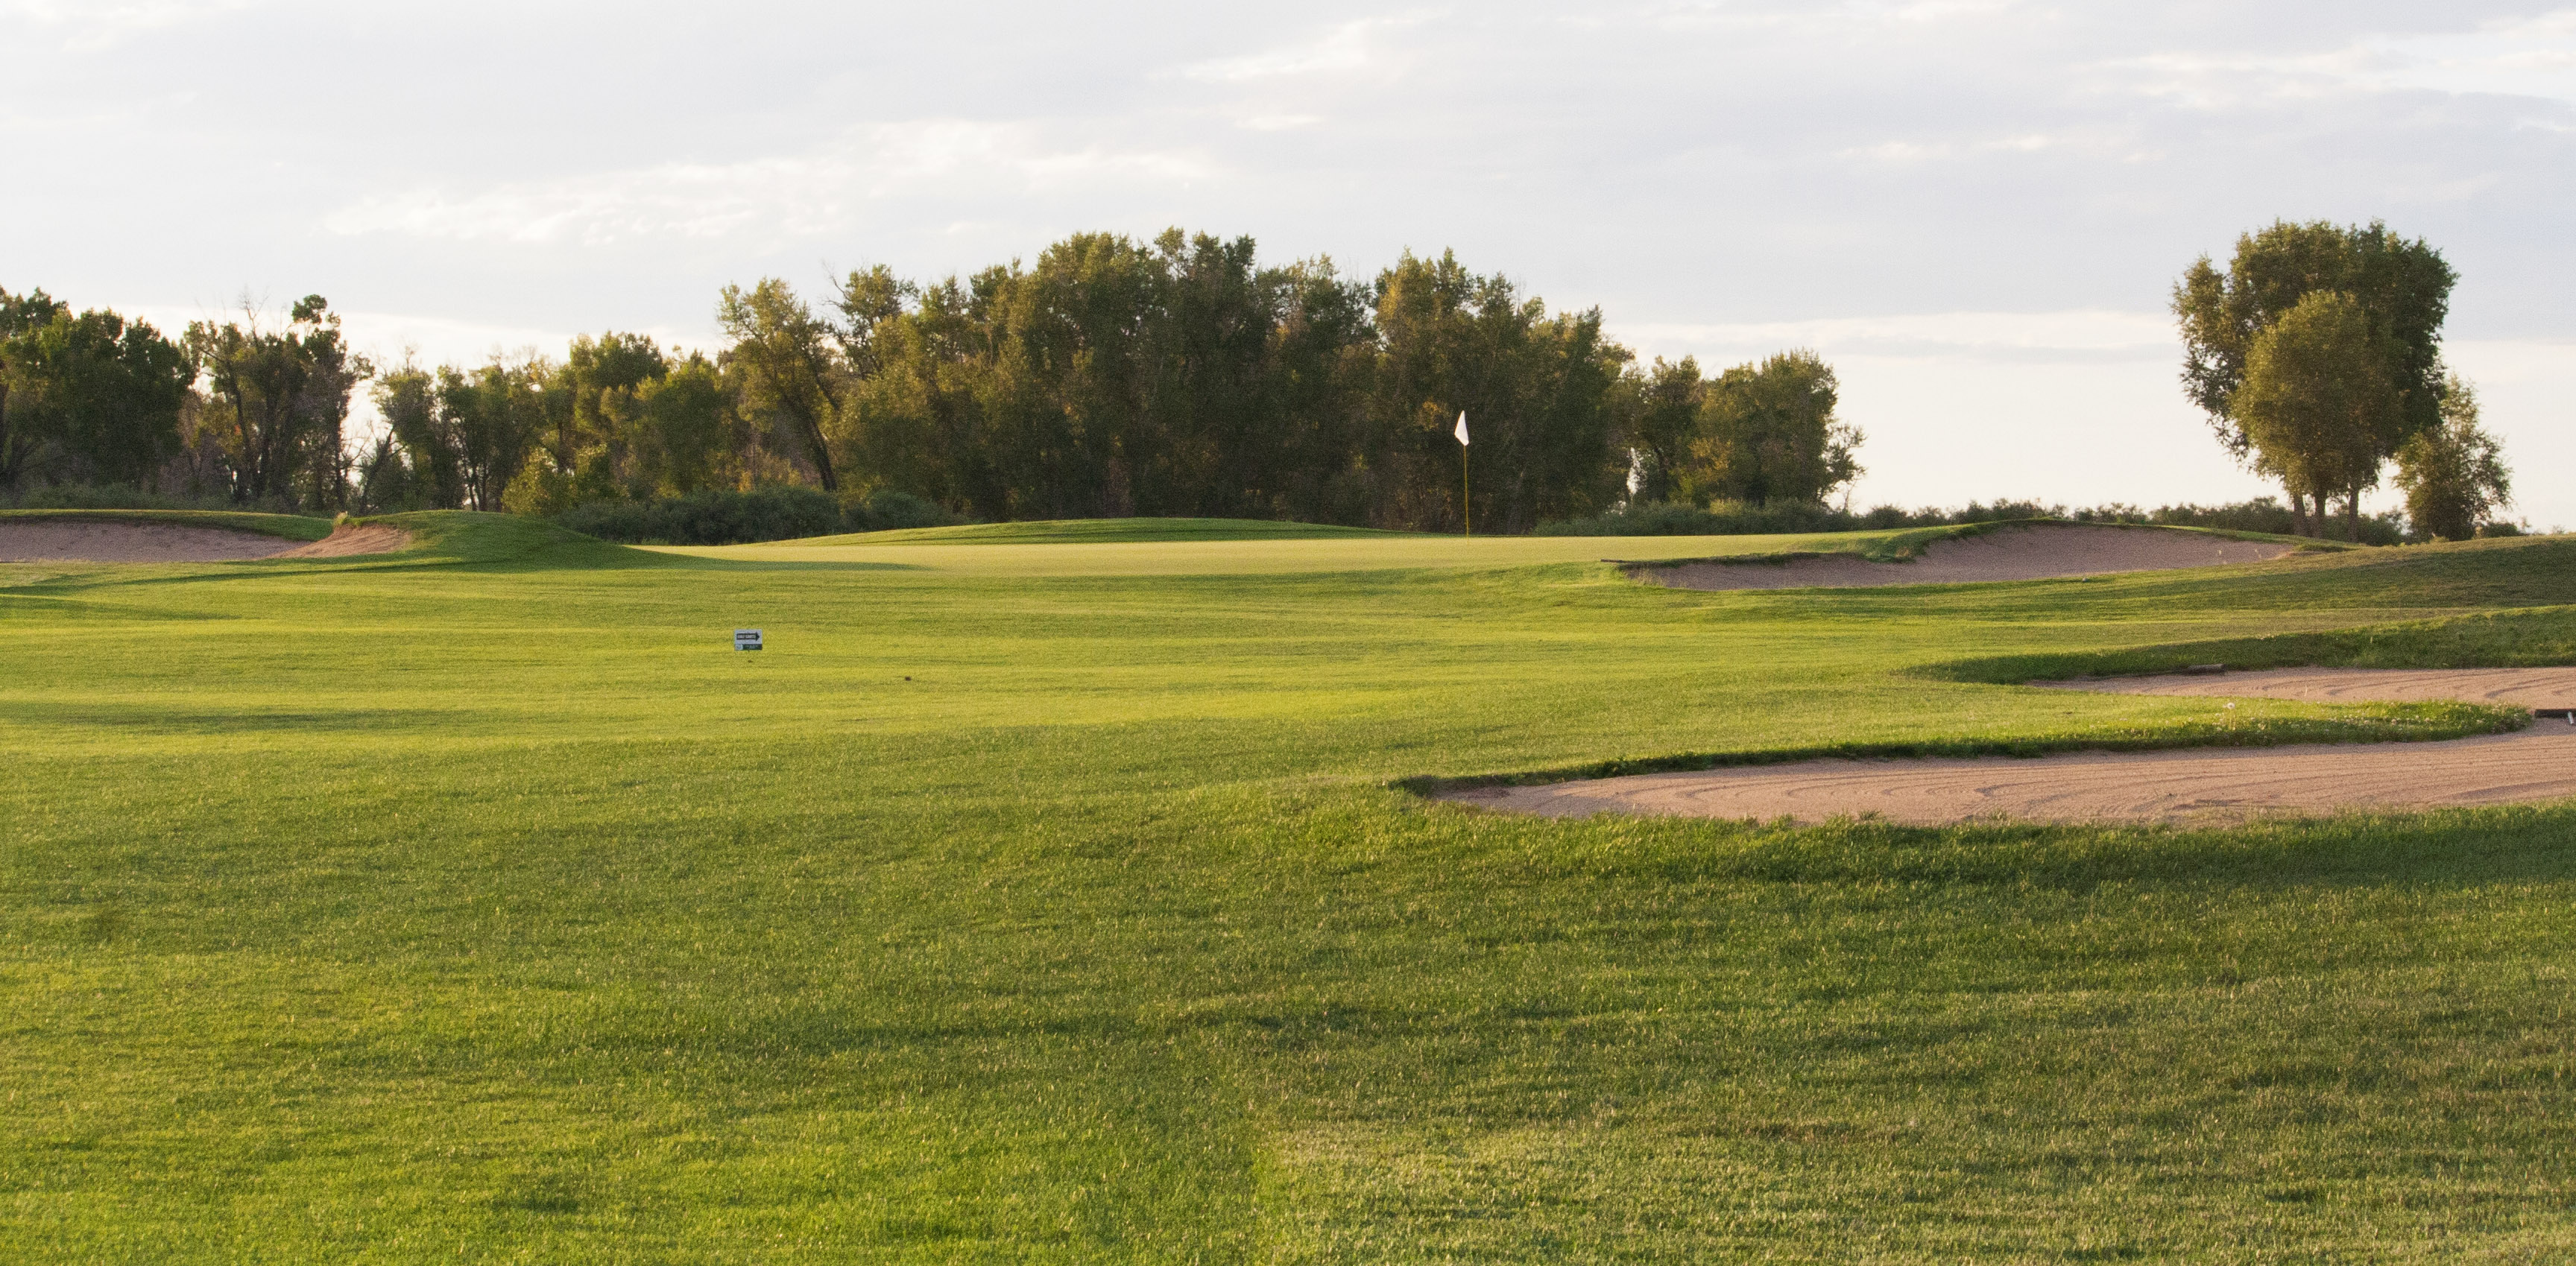 Overview of golf course named Cattails Golf Club